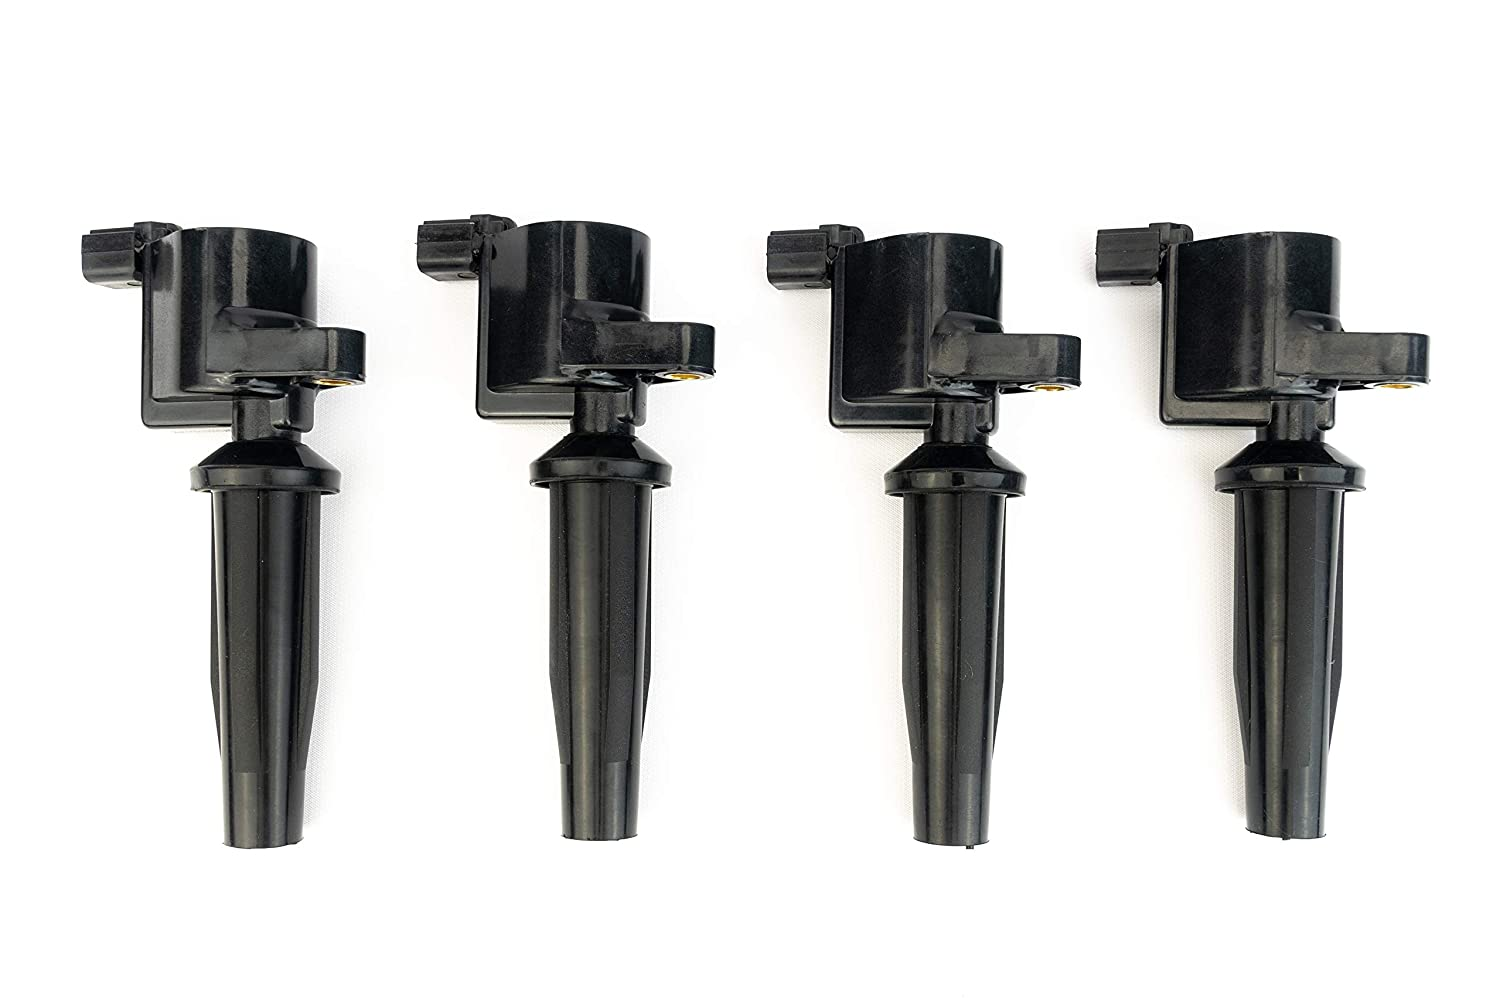 Ignition Coil Pack Set of 4 - Replaces# DG541, DG507, 4M5G12A366BC, C1453 - Fits Ford Escape, Focus, Transit Connect, Mercury Mariner, Mazda 3-2.0L, 2.3L - 2003, 2004, 2005, 2006, 2007, 2008-2013 AA Ignition